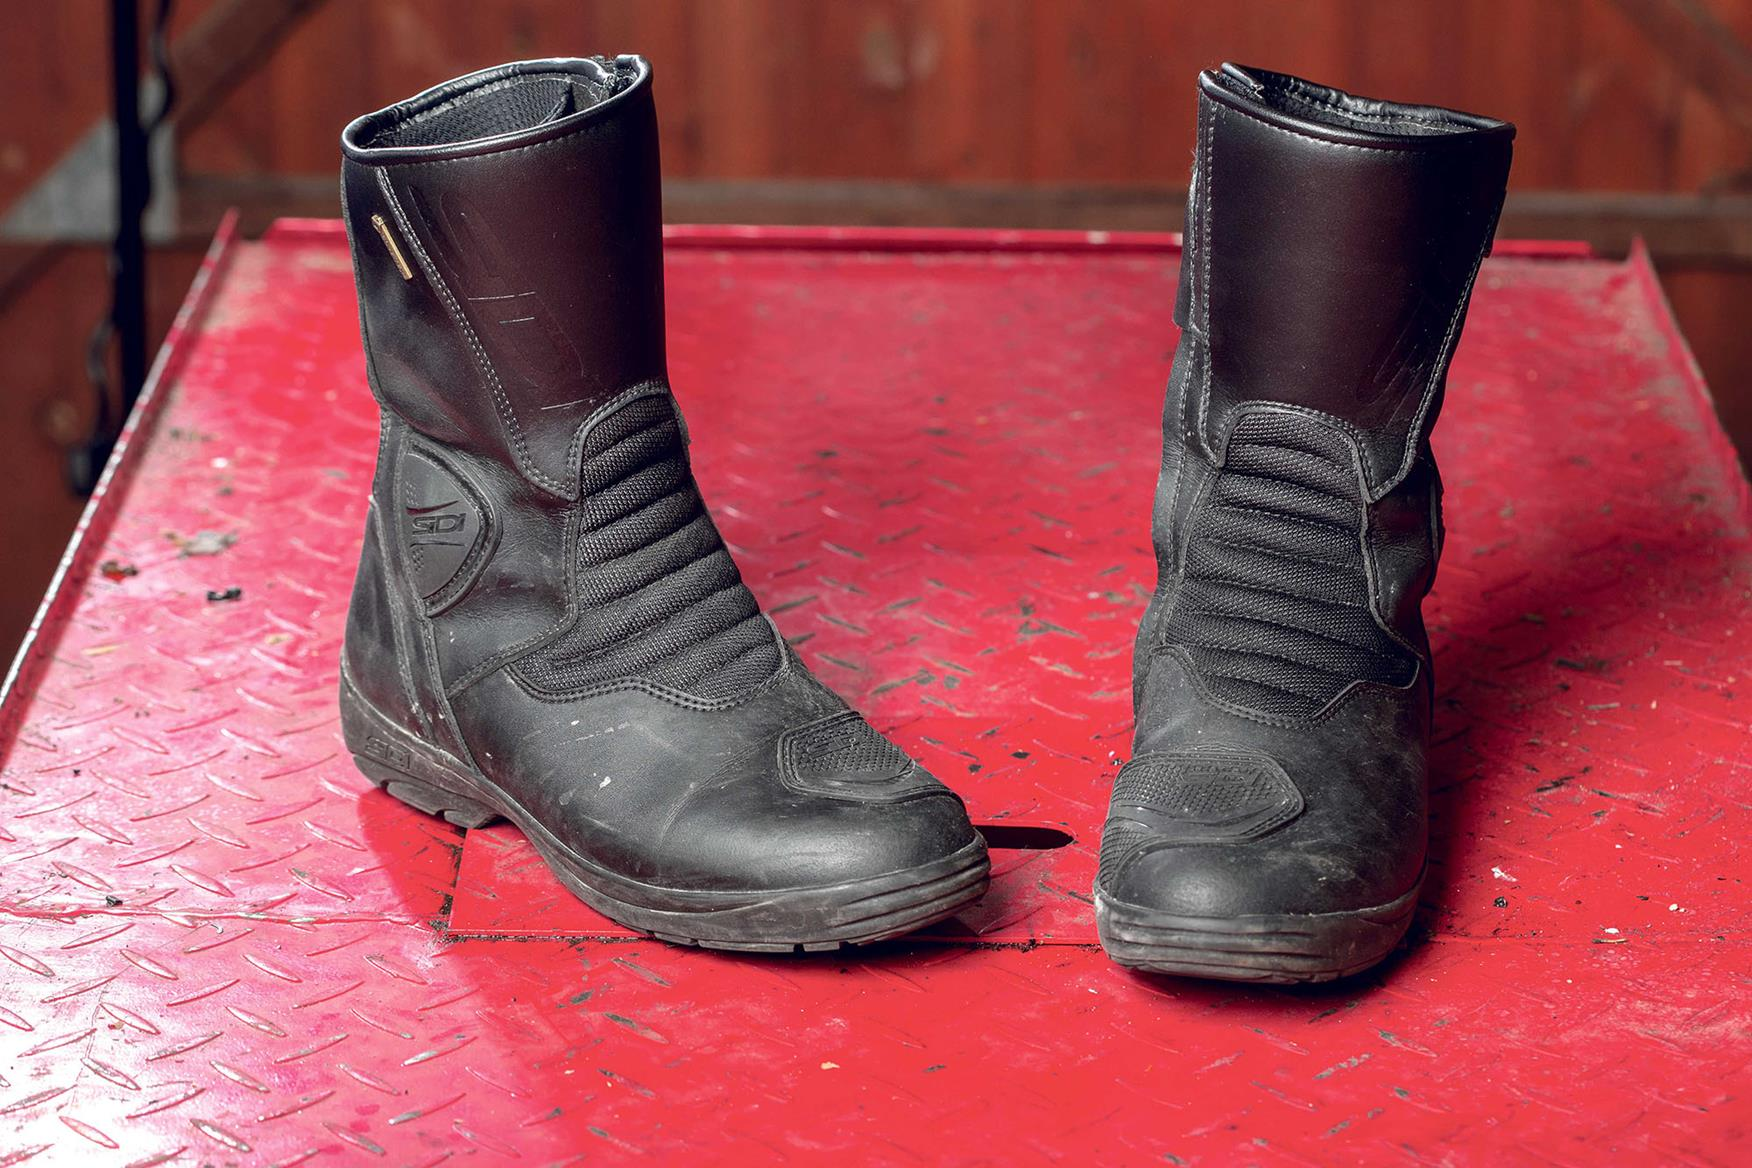 The Best Motorcycling Boots To Keep Your Feet Warm This Winter Mcn